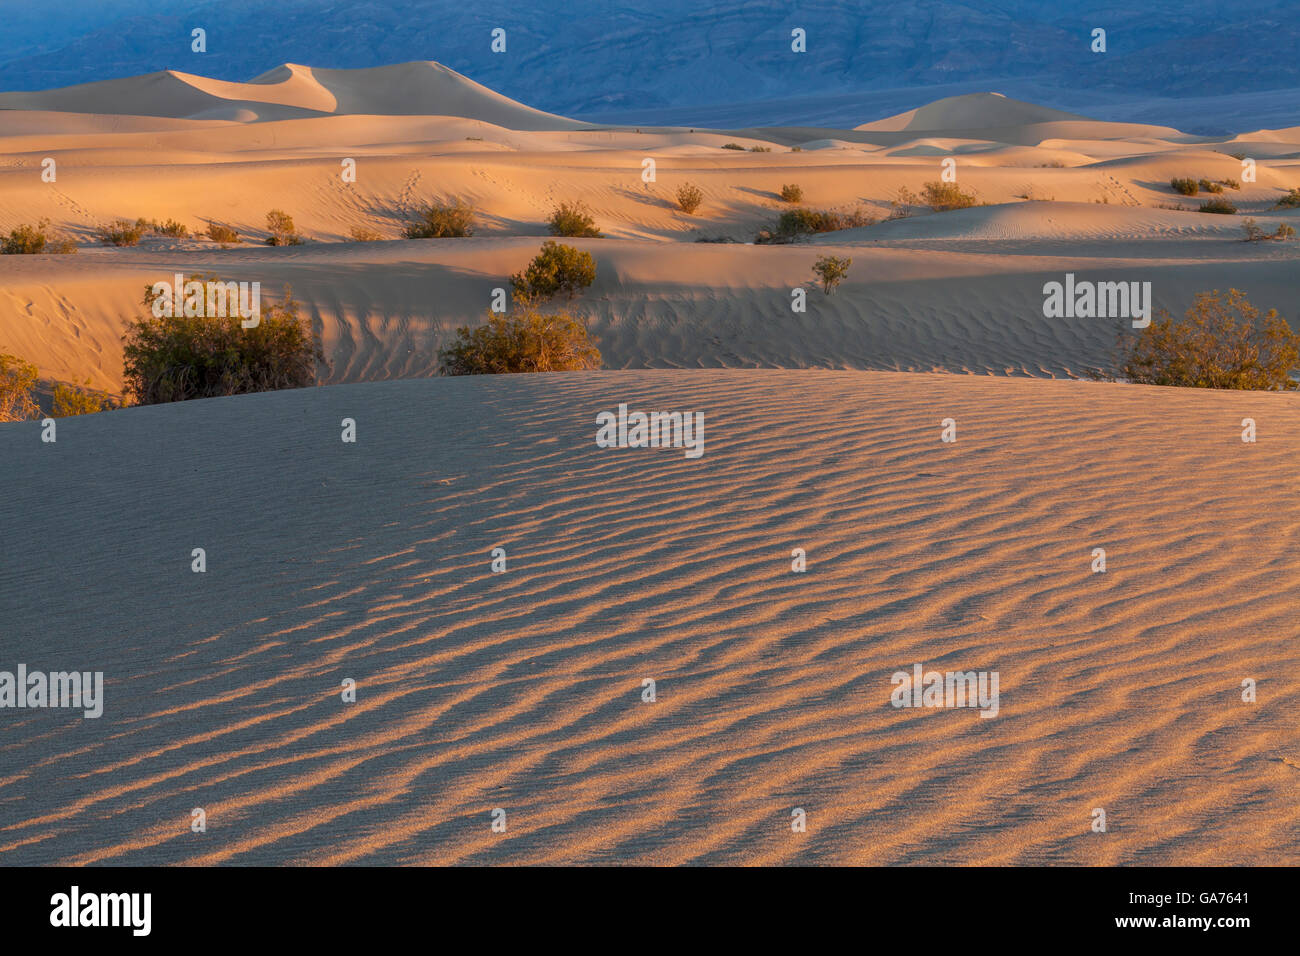 Mesquite Sand Dunes in Death Valley National Park, California, USA - Stock Image